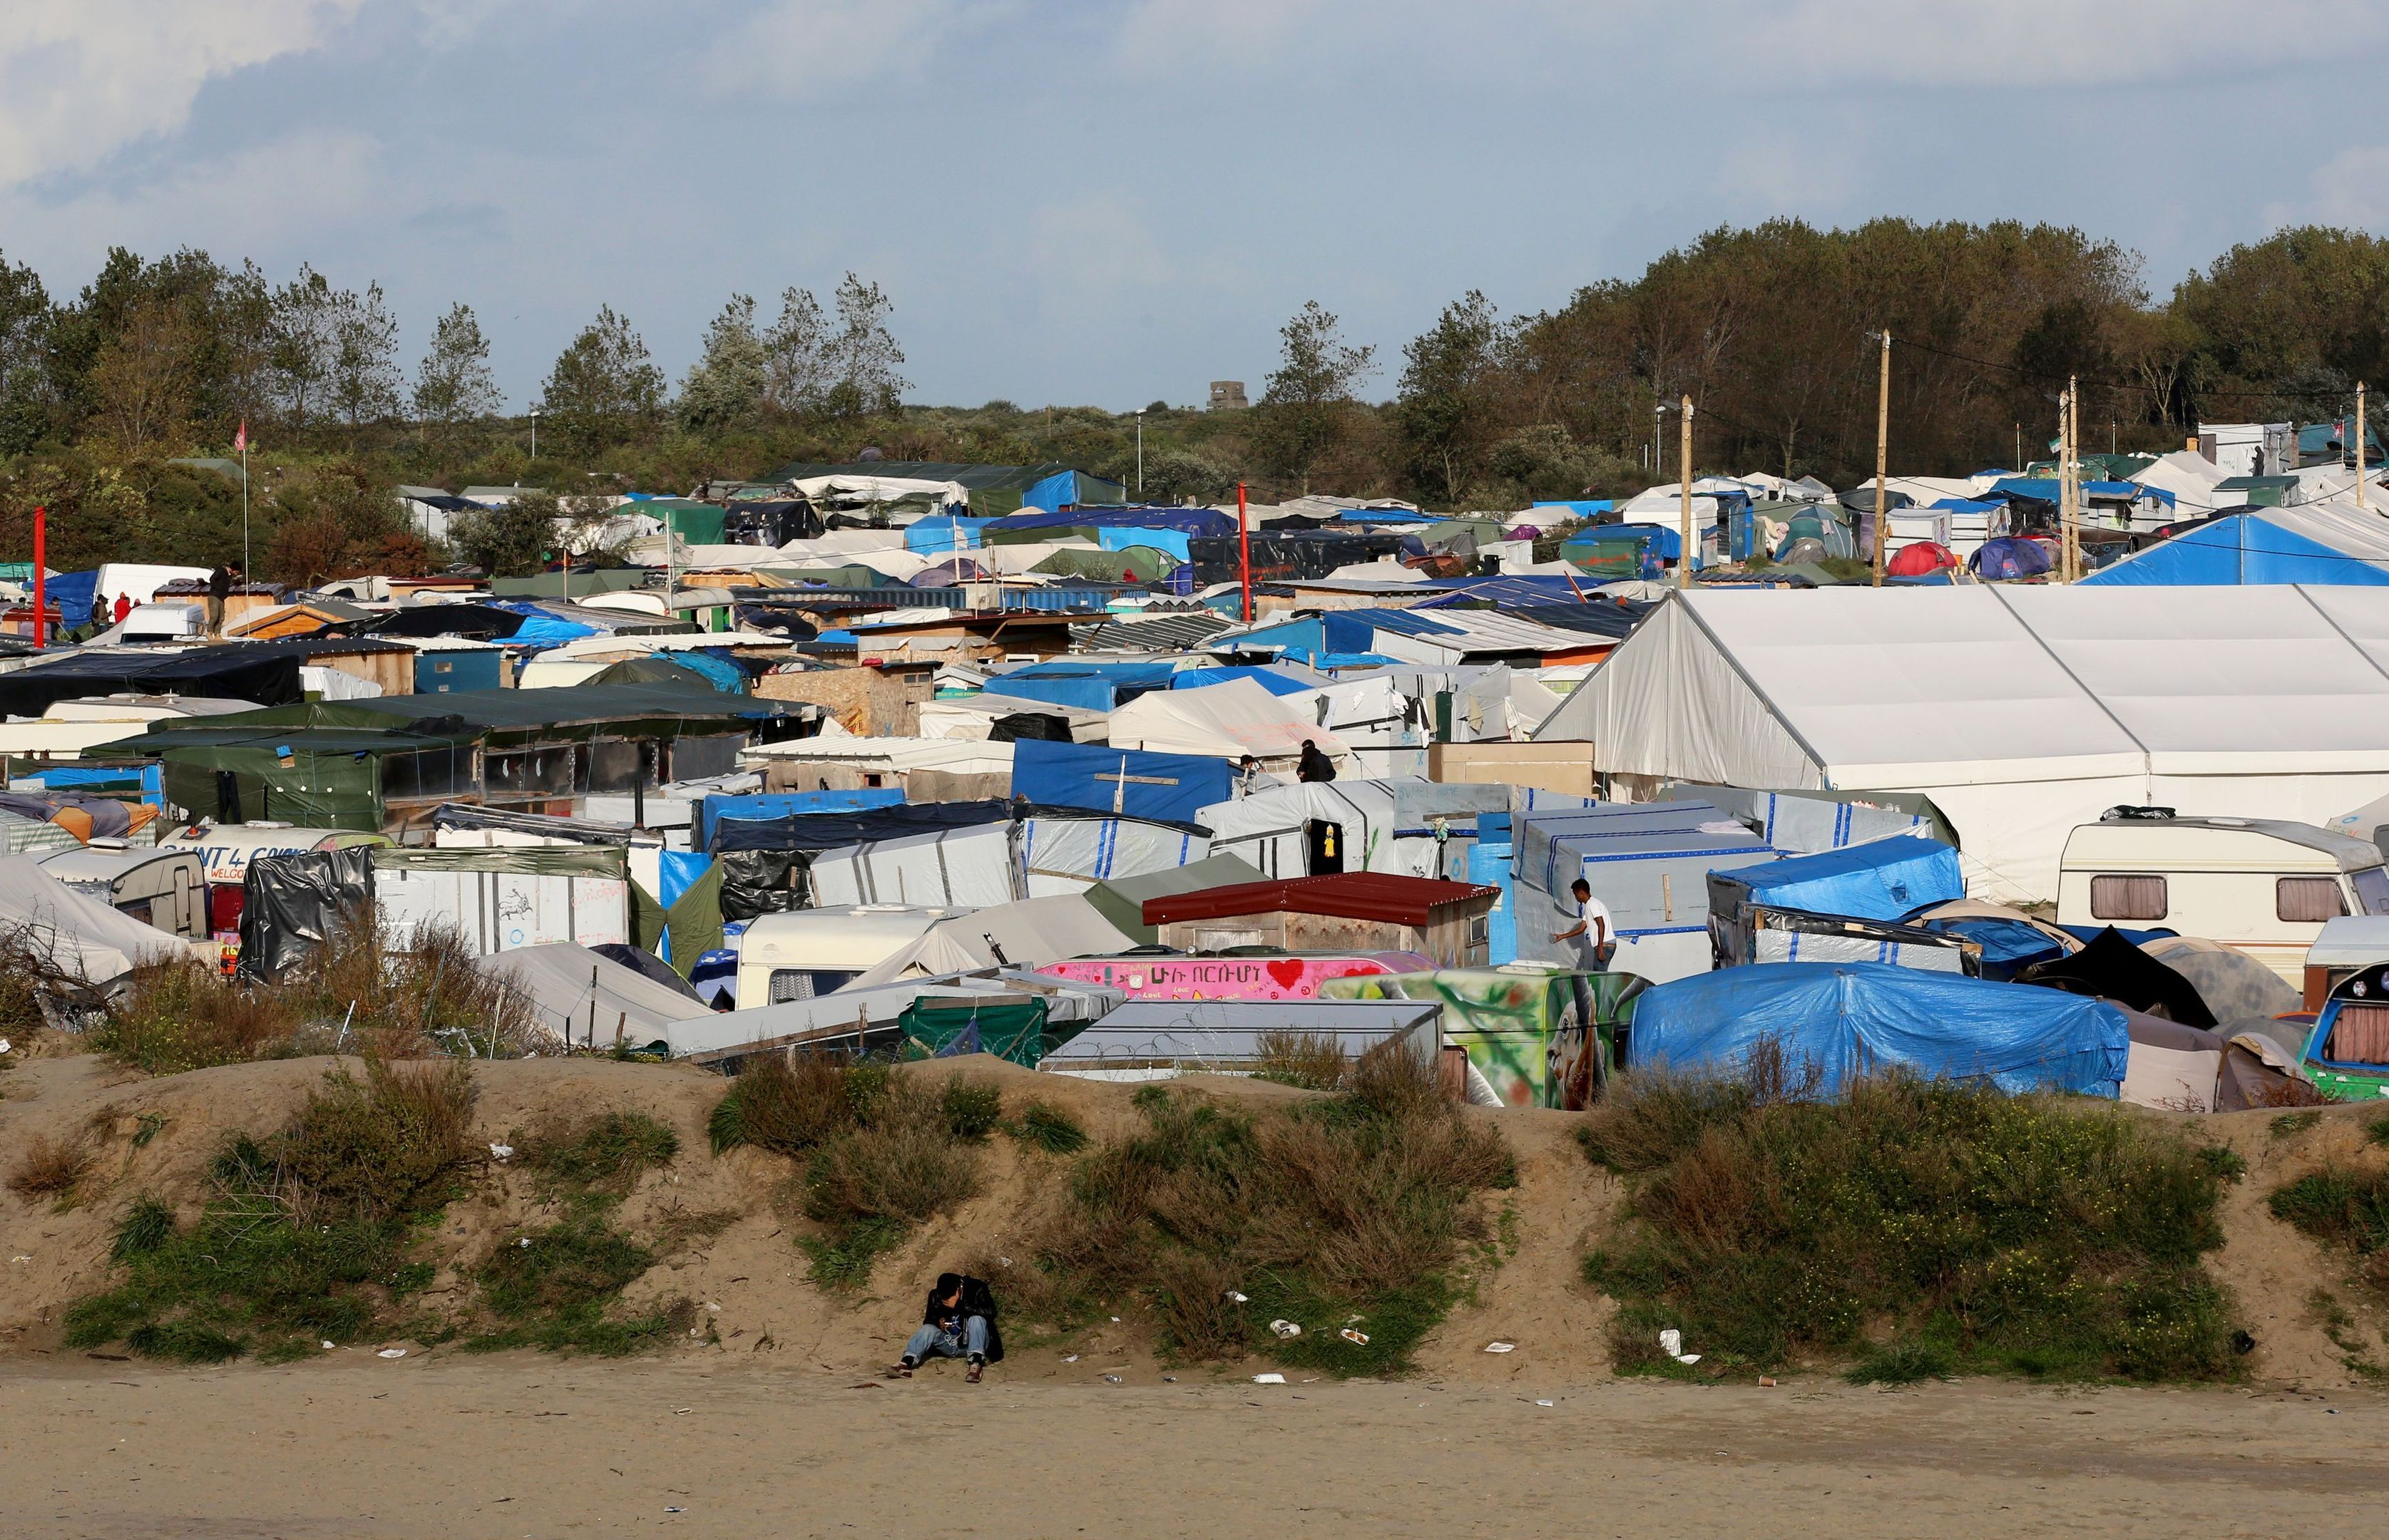 The migrant camp in Calais.